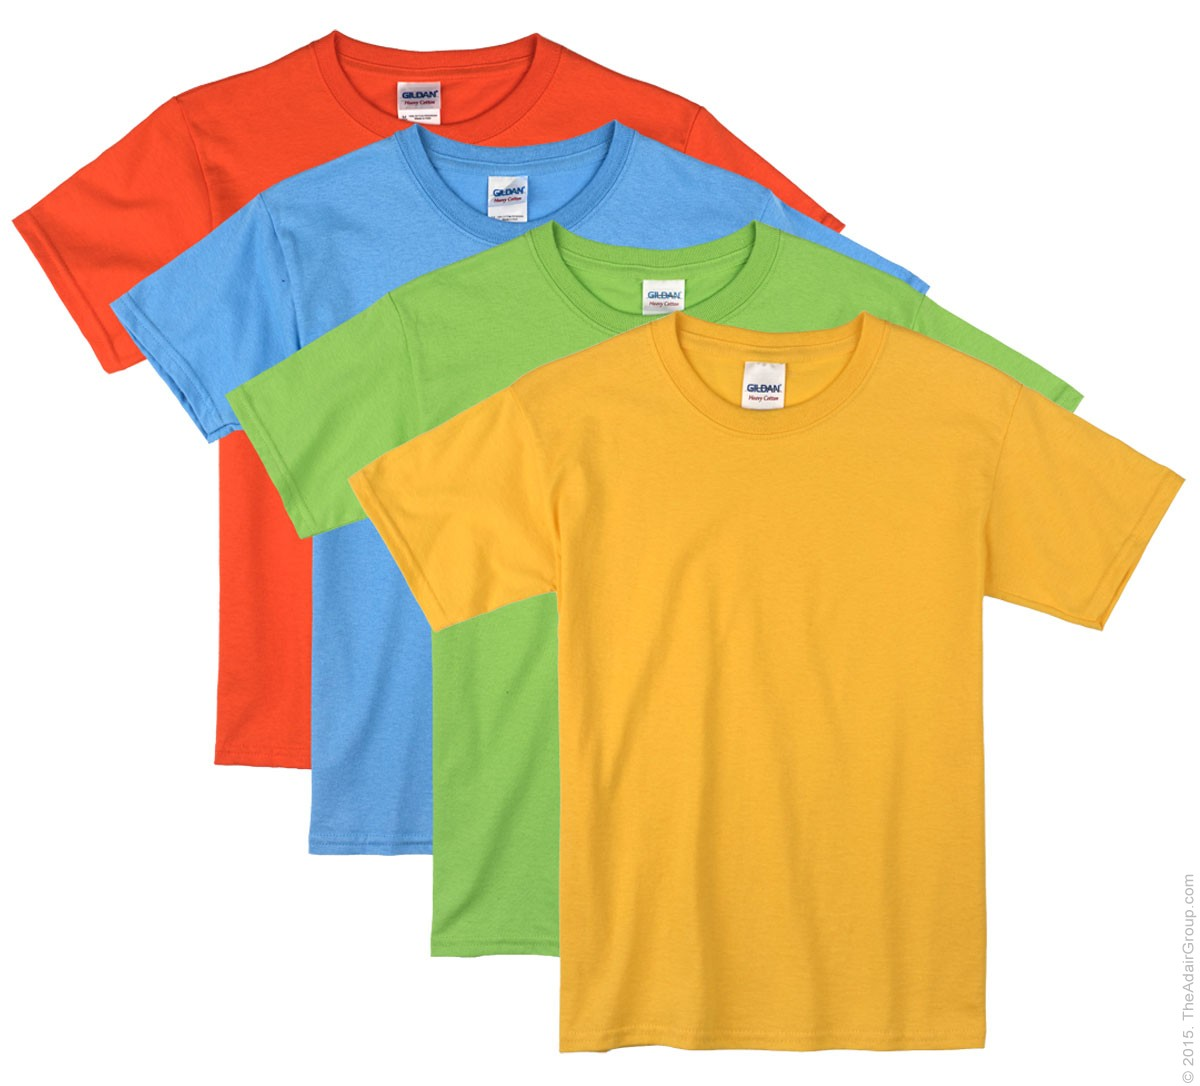 Kids T-Shirts - Top Quality - Wholesale & Bulk Available